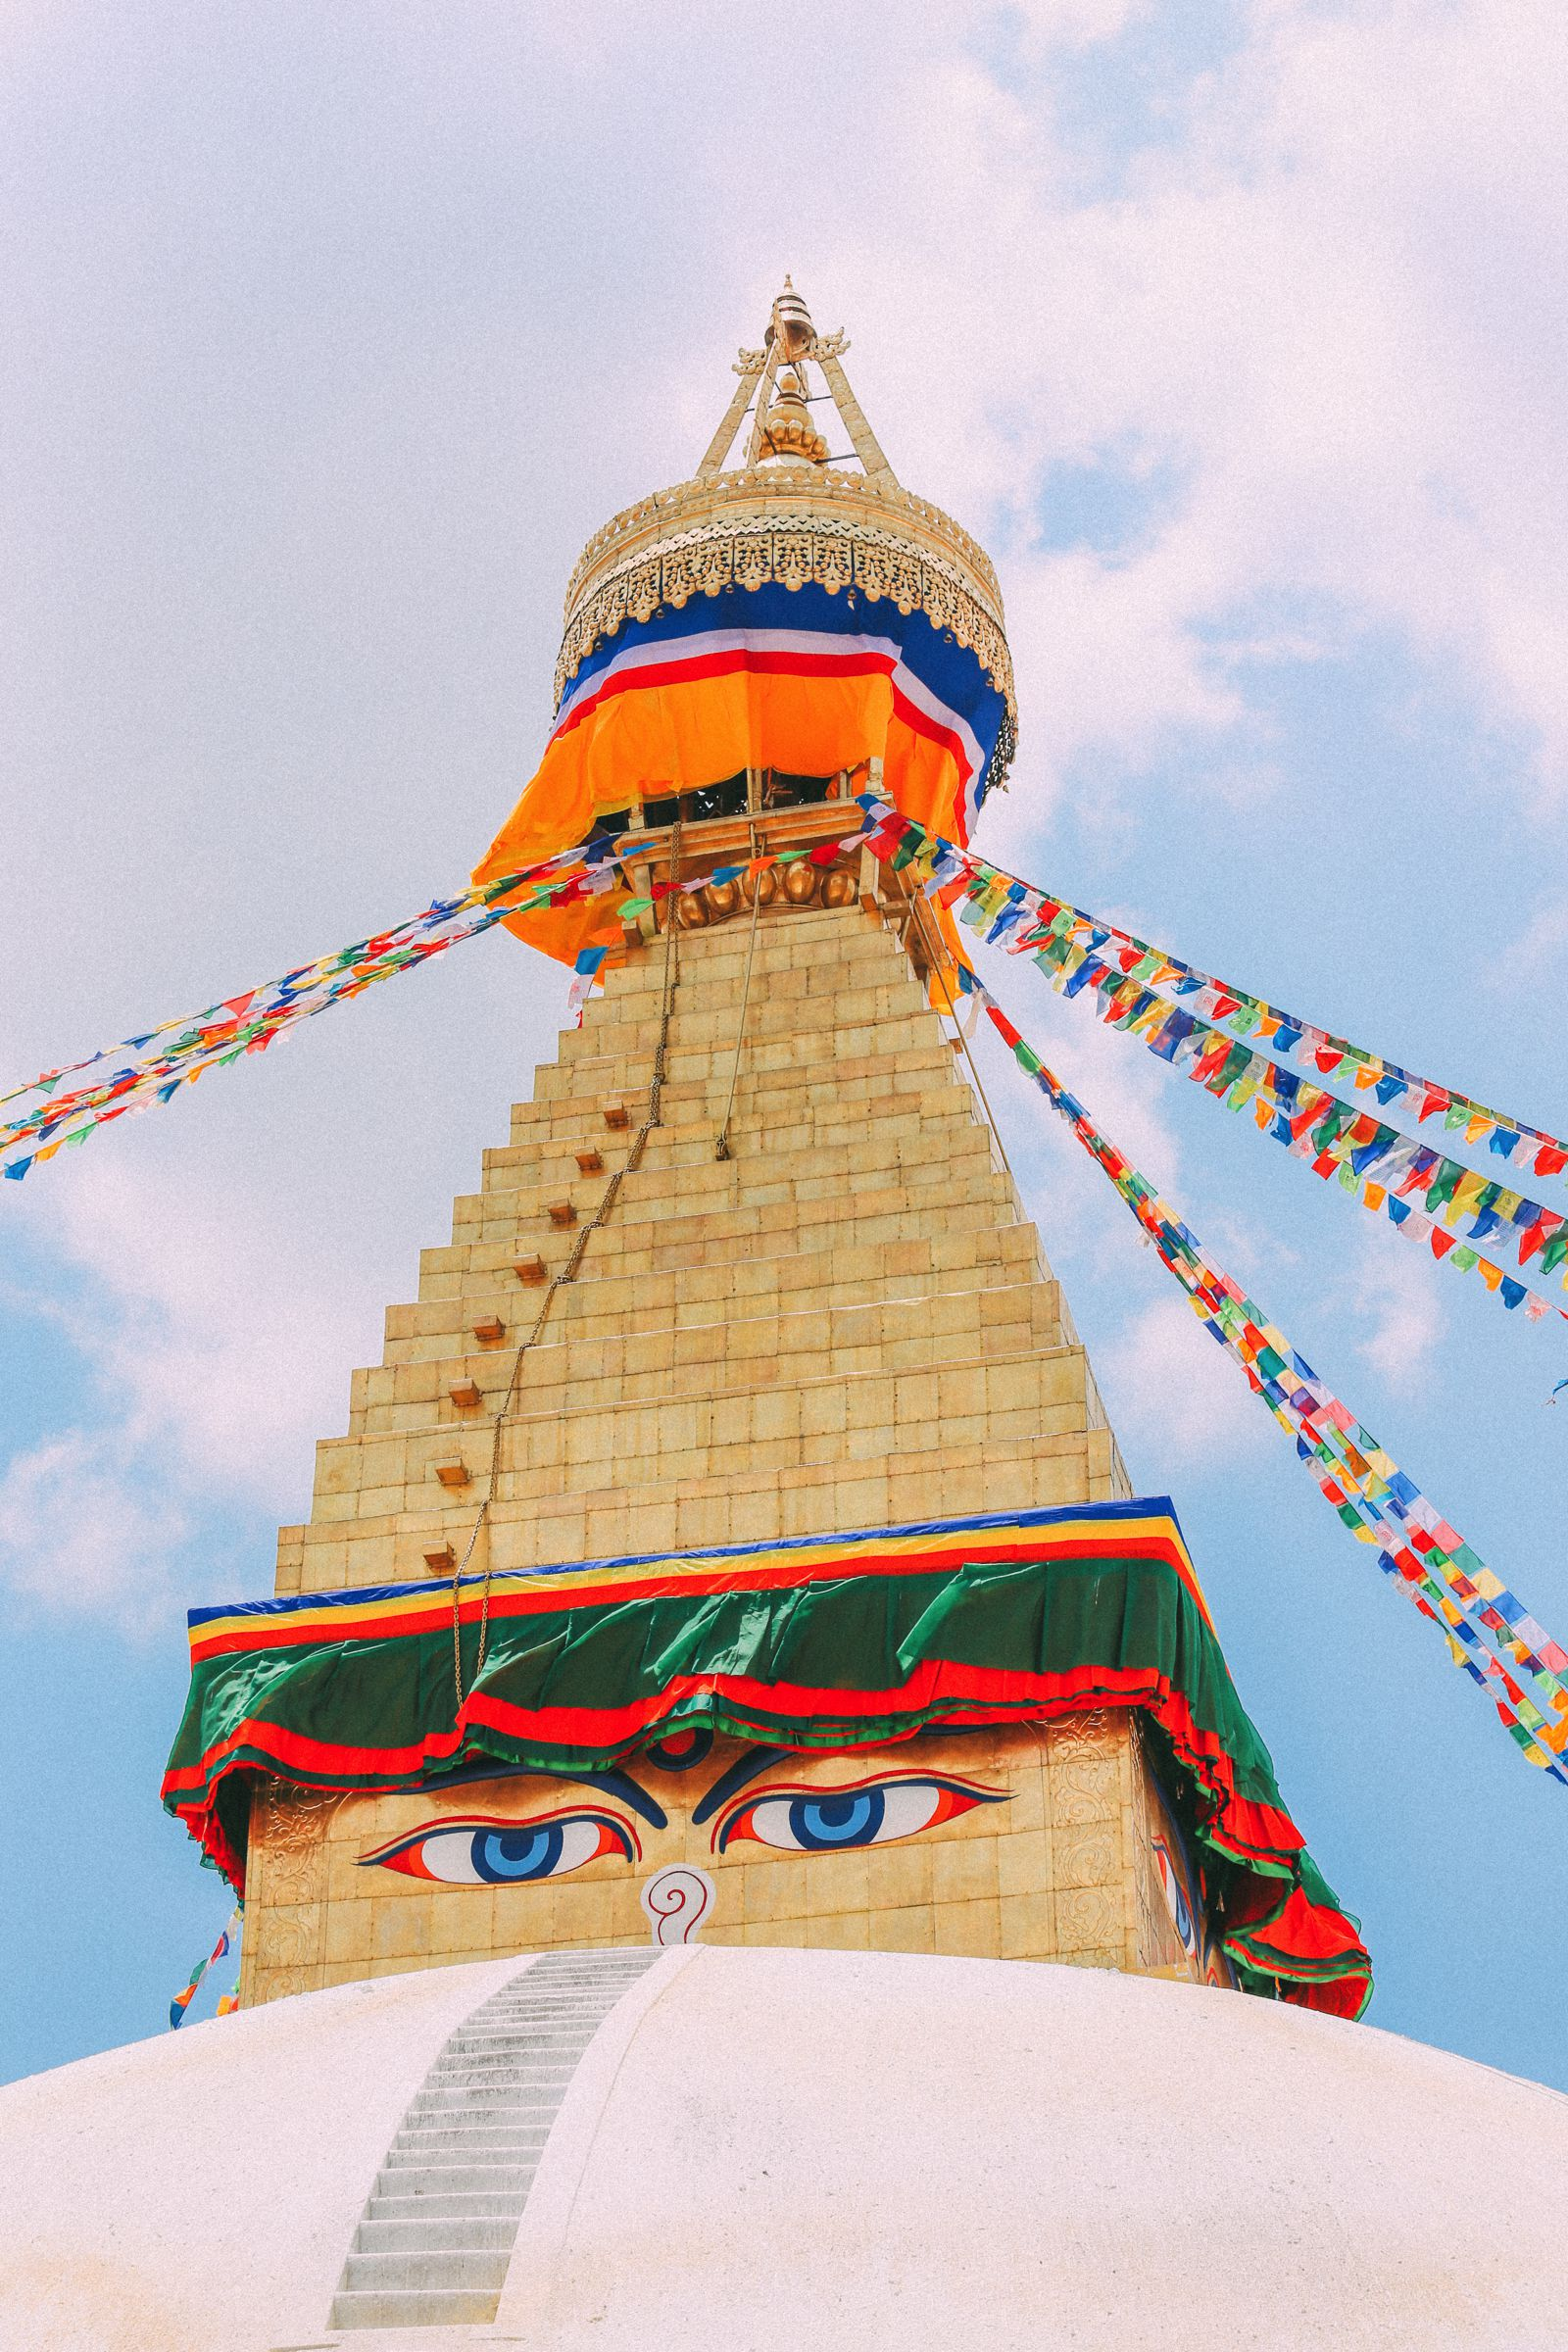 The UNESCO World Heritage Site Of Boudhanath Stupa In Kathmandu, Nepal (24)